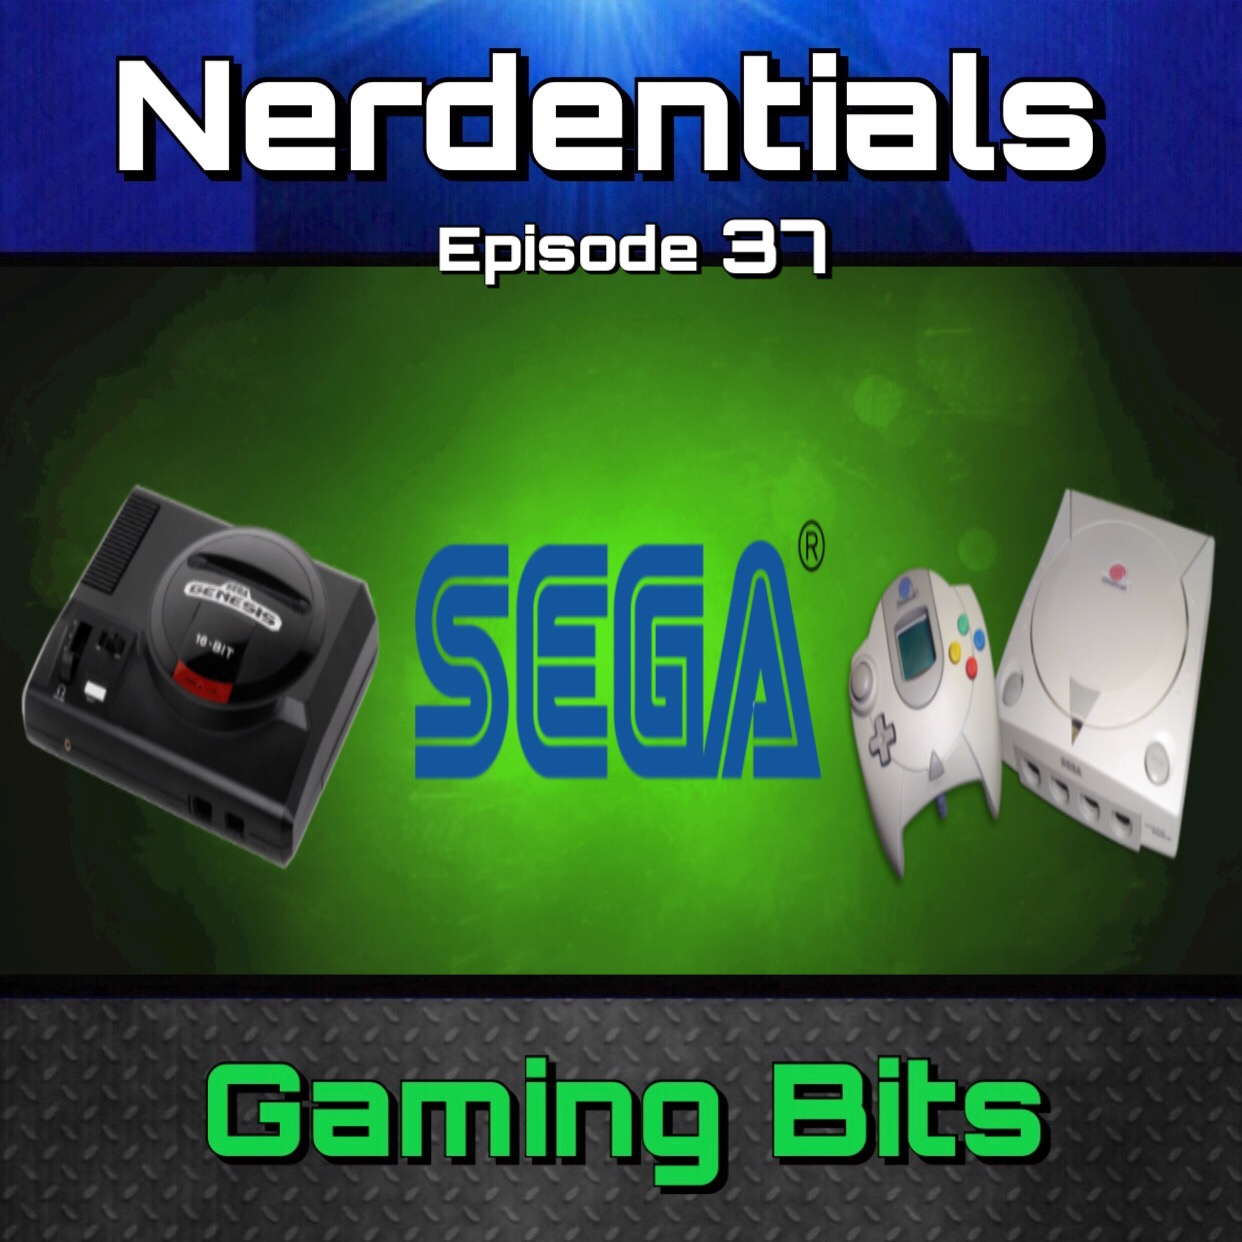 - Welcome to Nerdentials! Your weekly dose of the nerdy essentials. Covering Film, TV, Video Games and Comics. This week we bring you the first of many mini-sodes, where sometimes a tangent from a previous recording ended up being a full topic!This time we discuss The rise and fall of Sega as a hardware company and then reminisce on whether Sony handhelds were good or not.